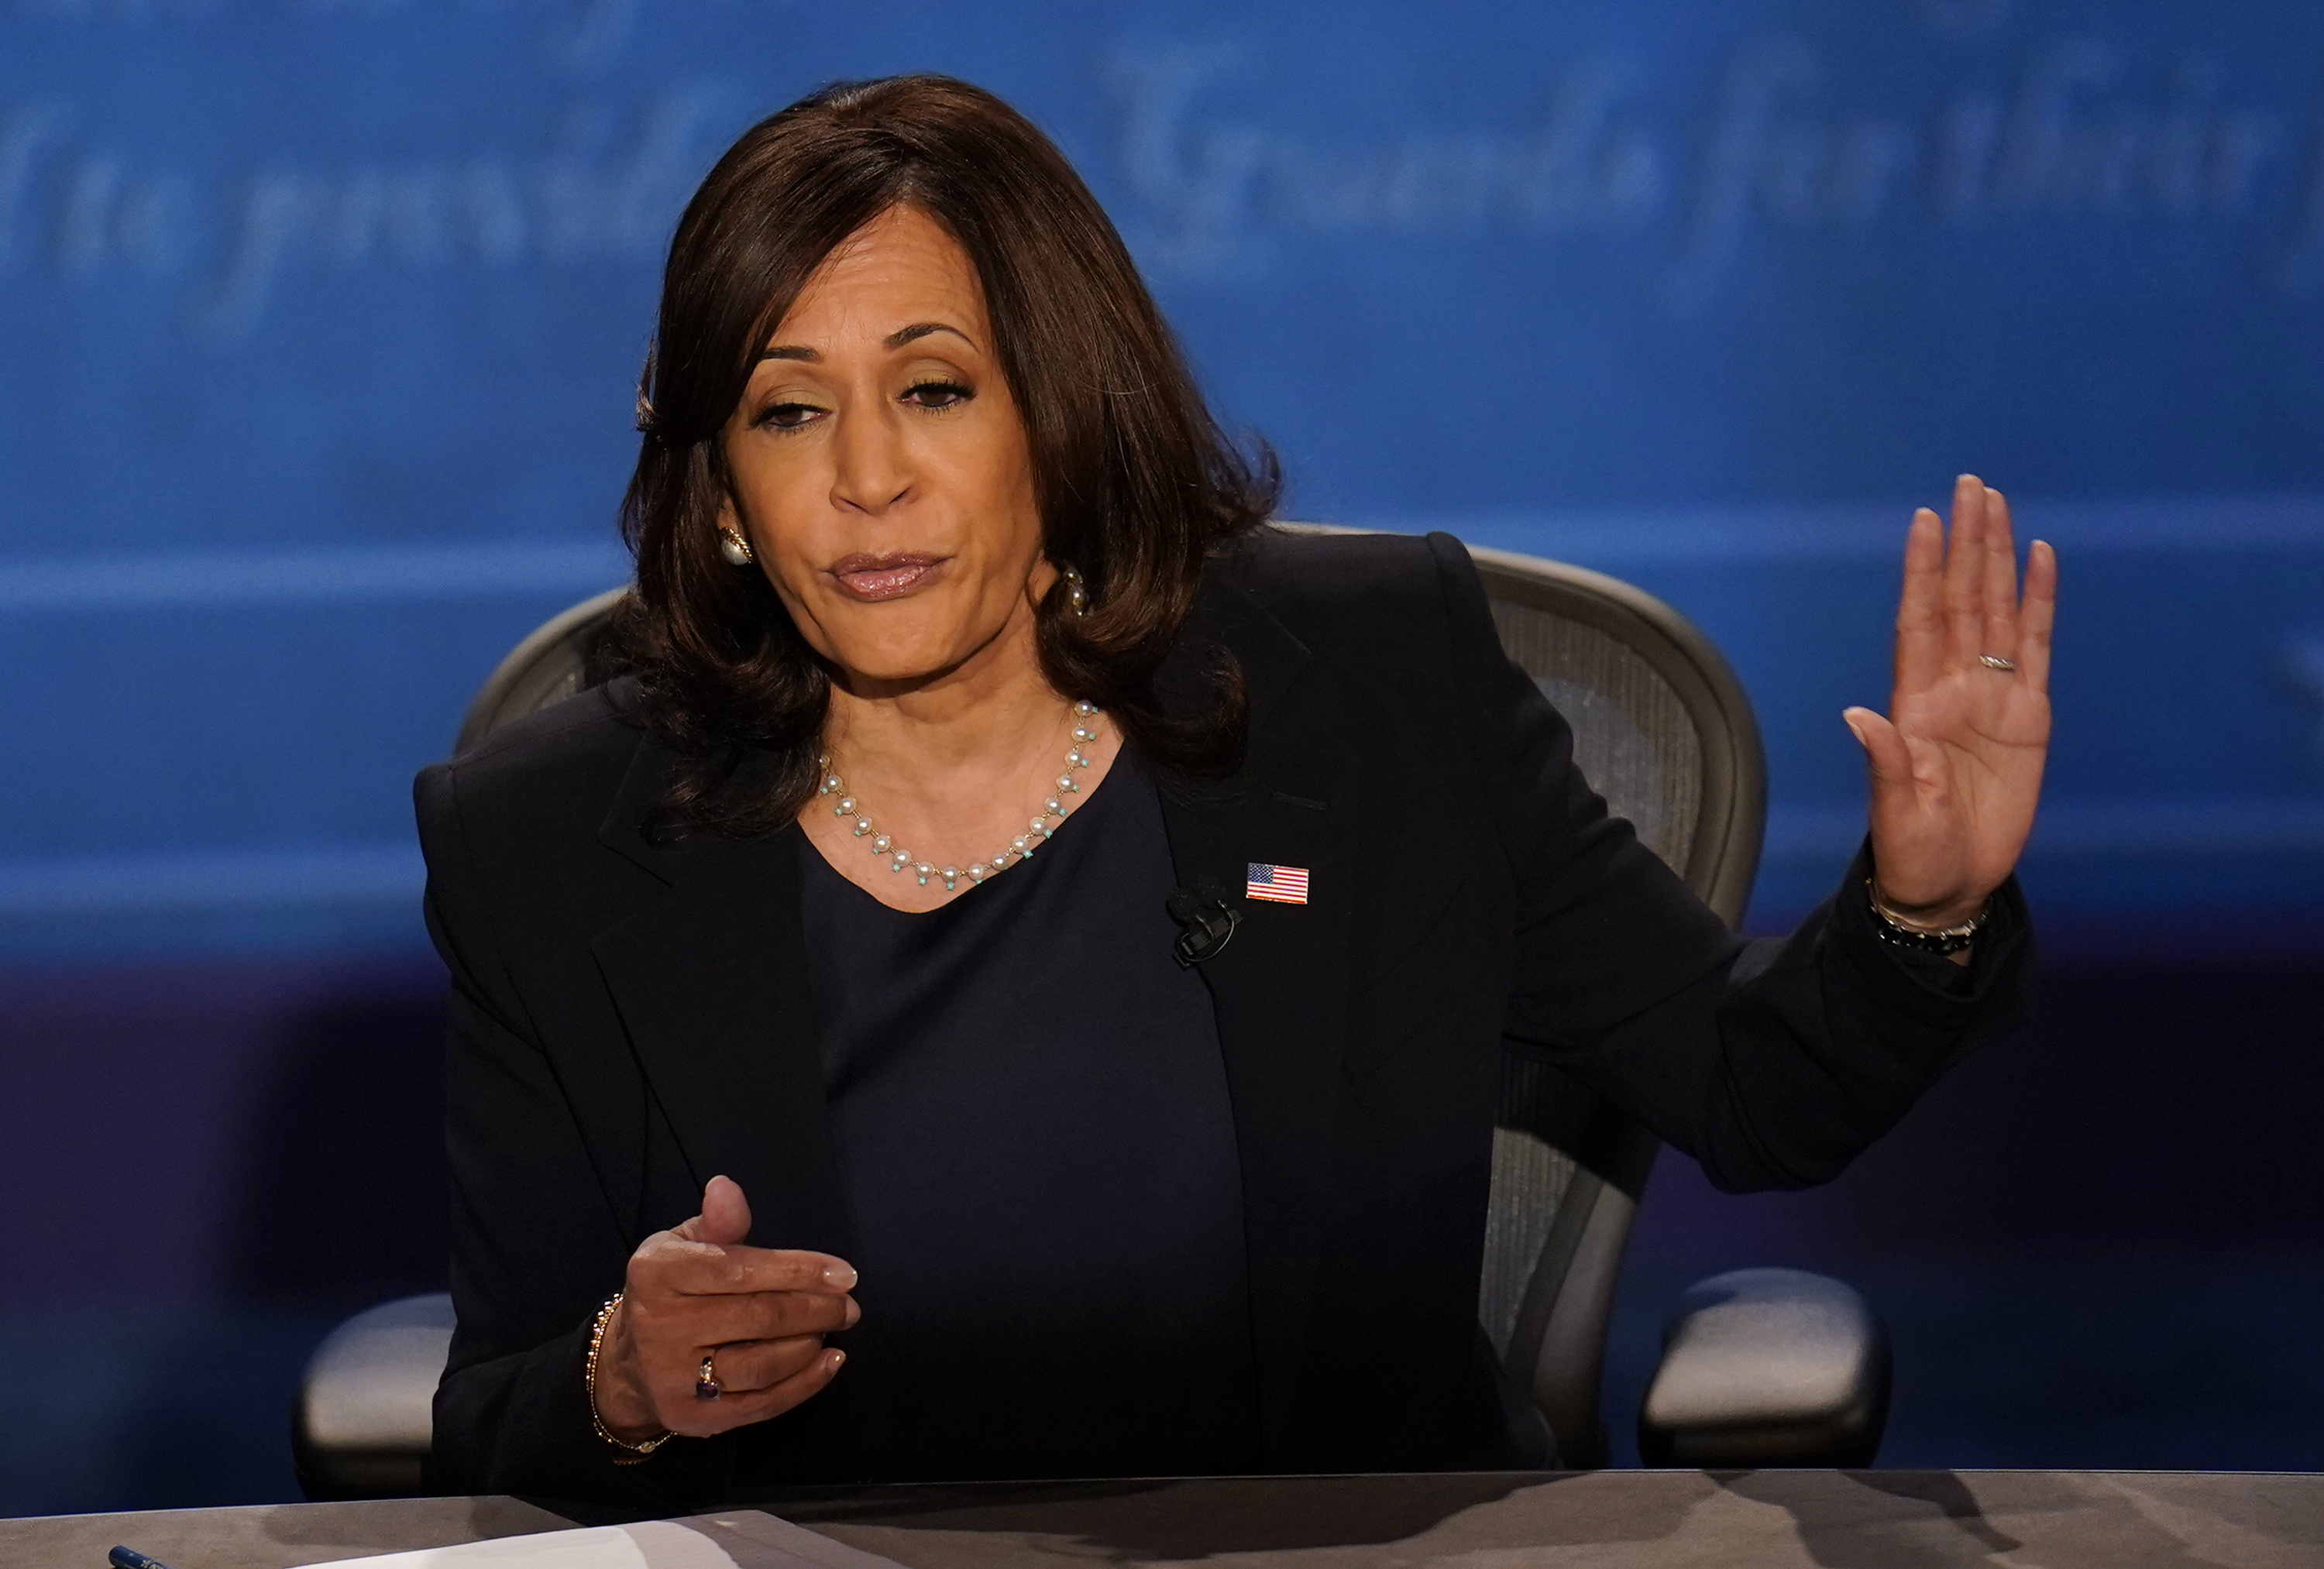 Surprisingly, Harris did not bring up the current state of the White House, where 11 staffers and the President and First Lady have all tested positive for the coronavirus.